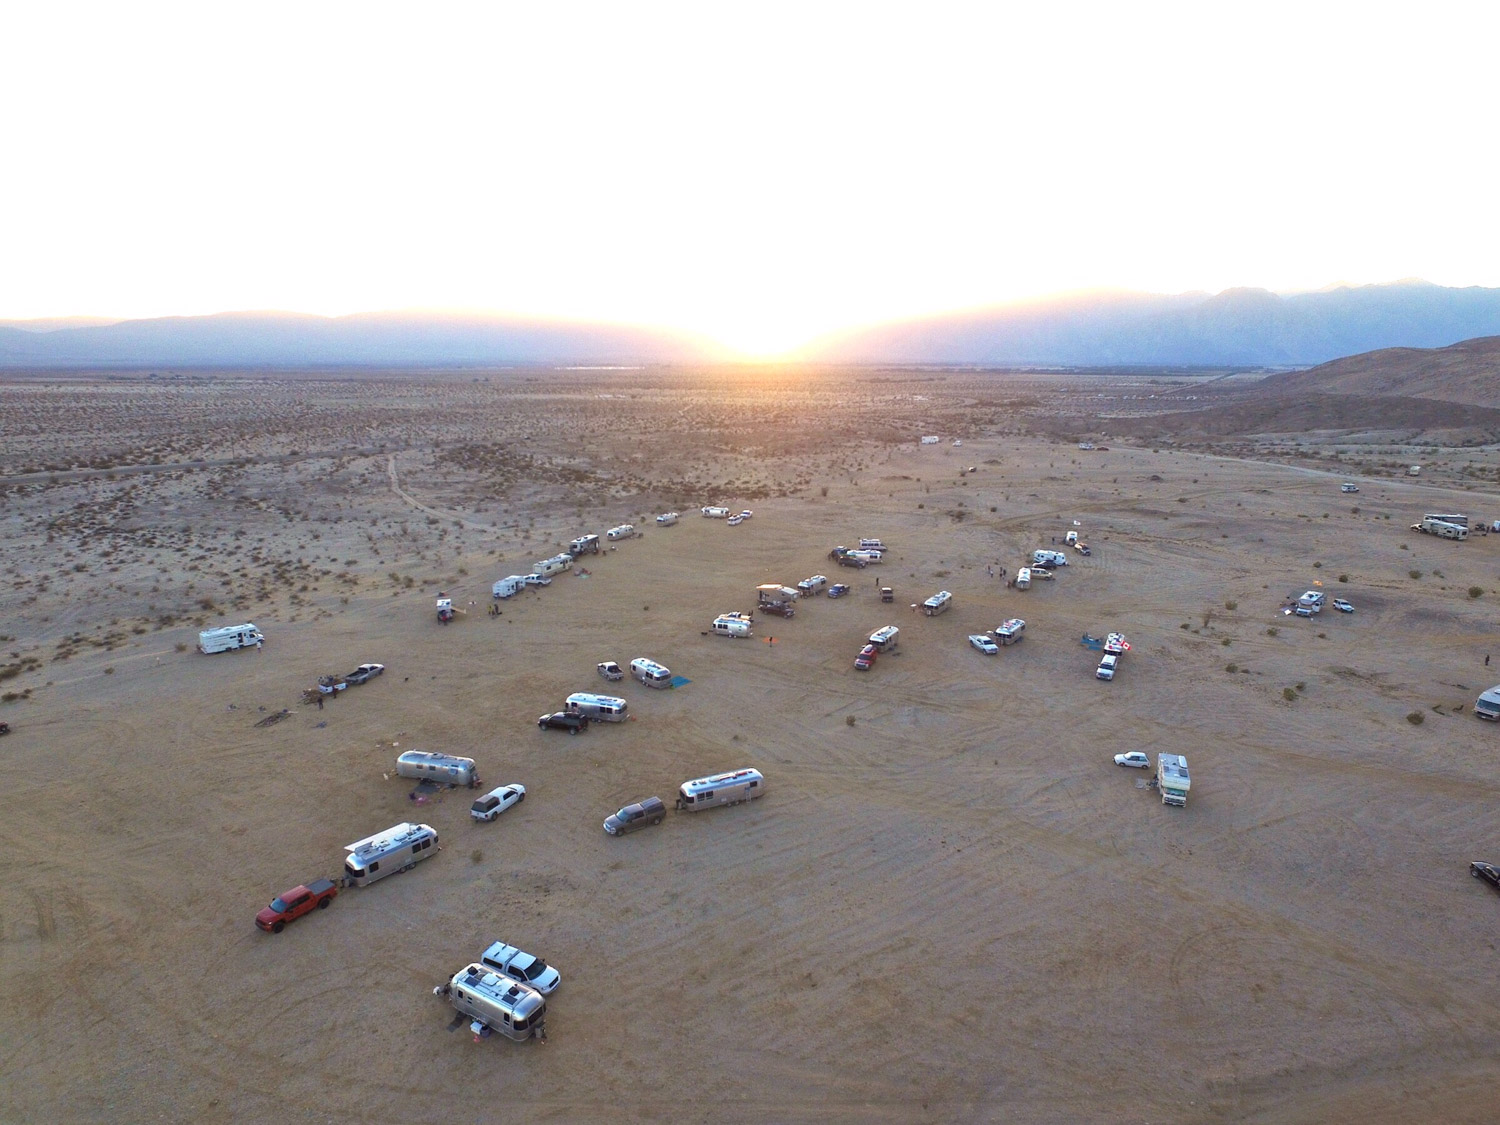 Drone shot of our boondocking site as more people were showing up.Photo by @gm3sf.